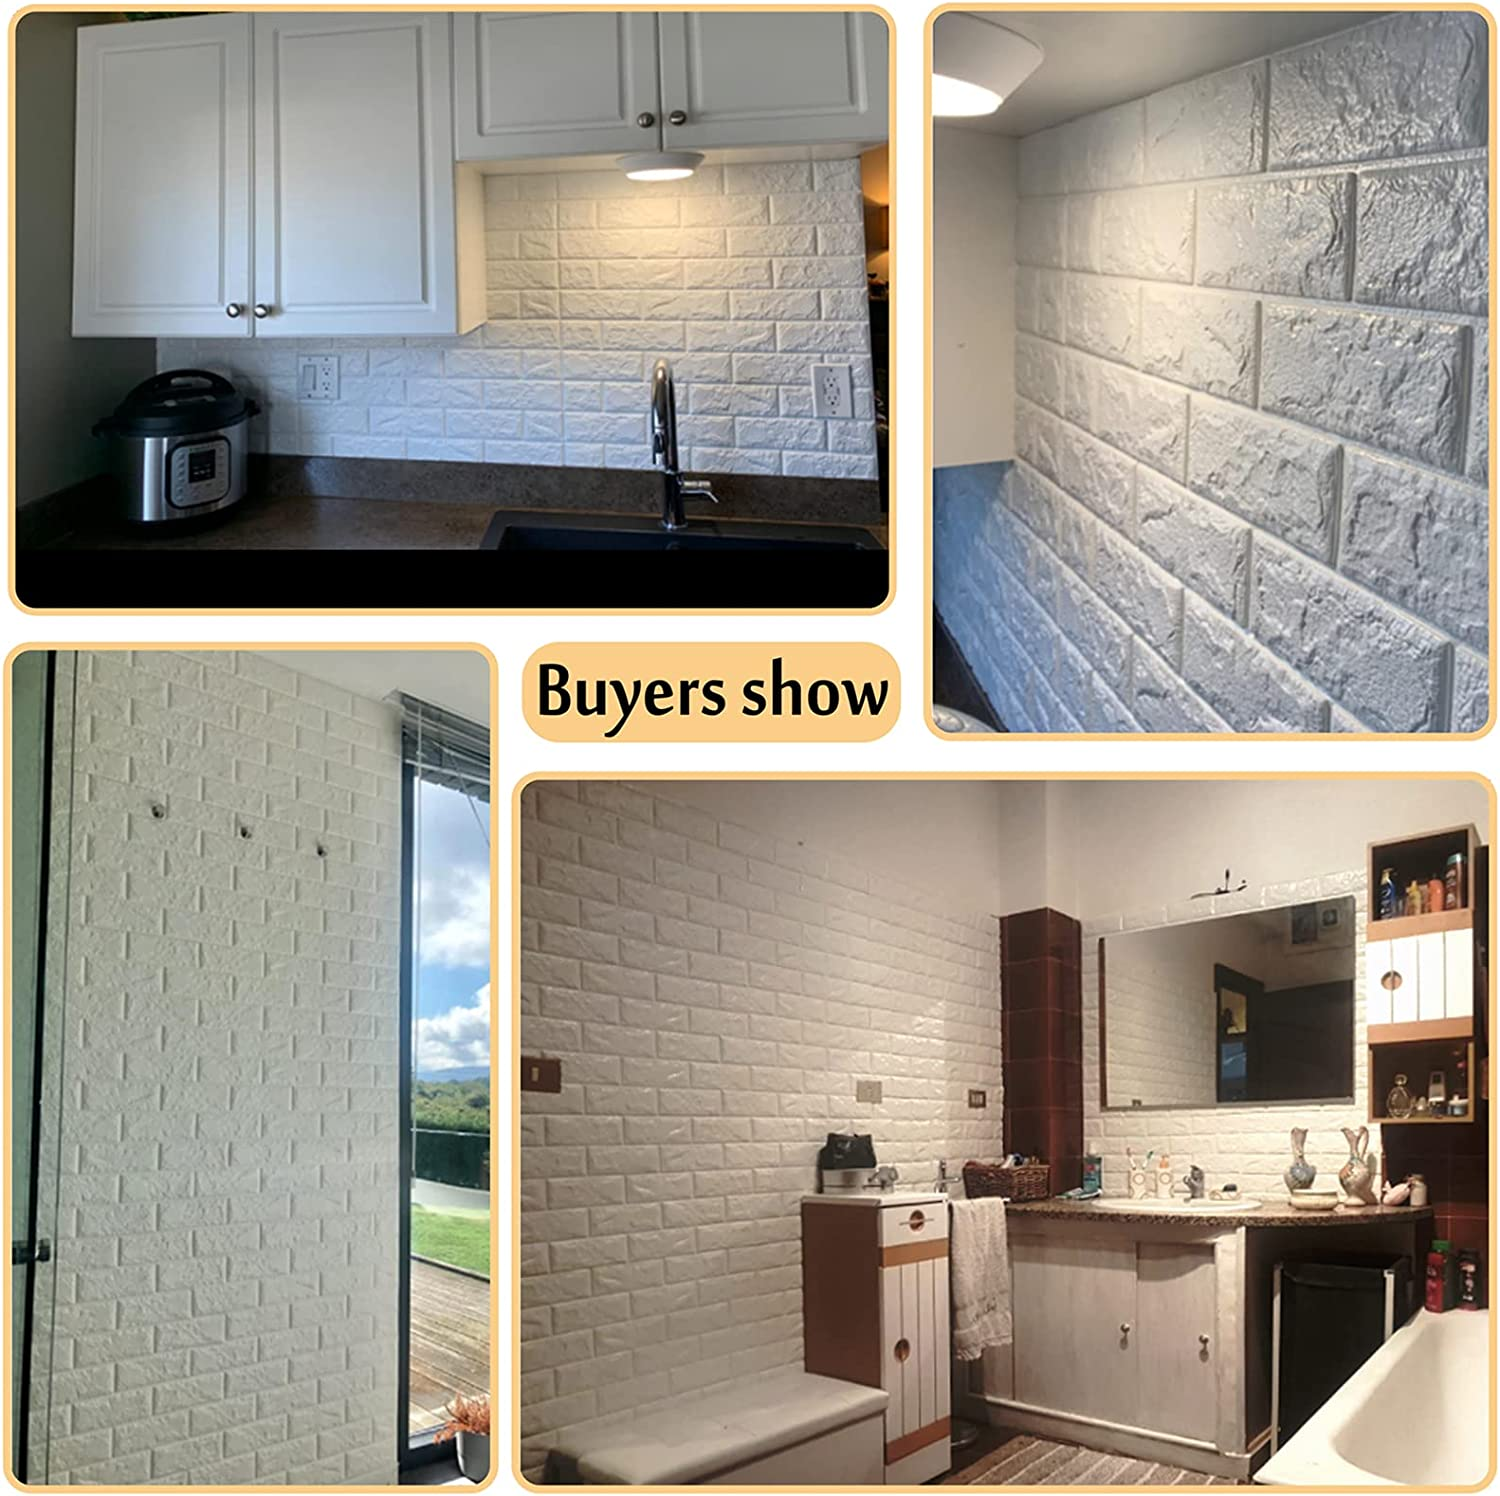 Buy Arthome 3d Faux Brick Wall Panels 20pack Cover 113 Sq Ft Peel And Stick Self Adhesive Wallpaper Foam Tile Decor For Living Room Bedroom Background Wall Decoration White 20pack Online In Vietnam B07b5zdspc